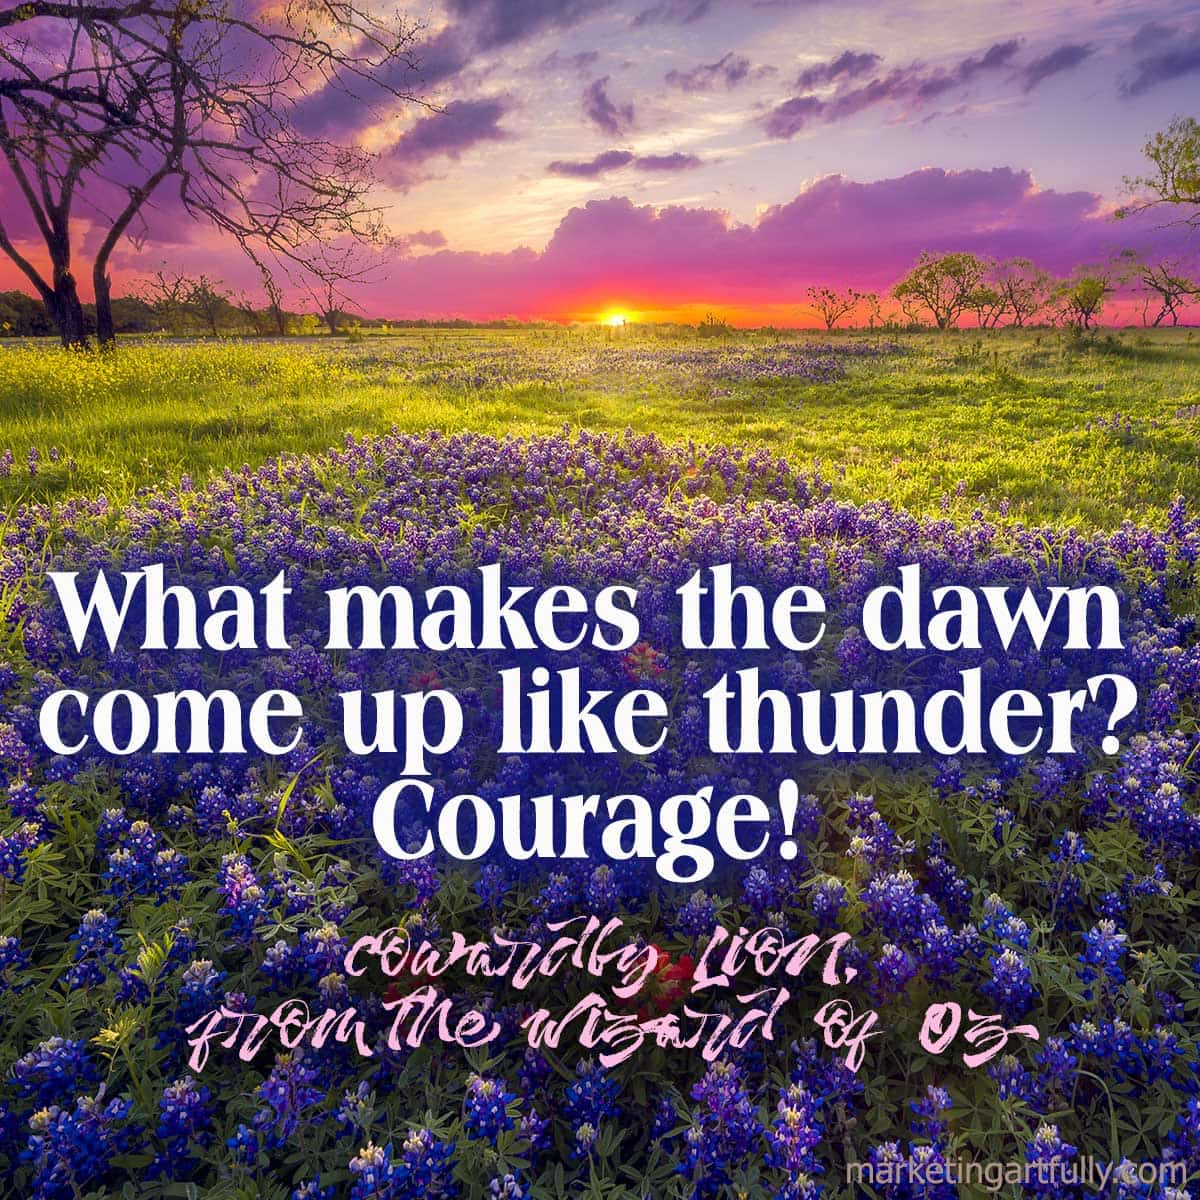 What makes the dawn come up like thunder? Courage